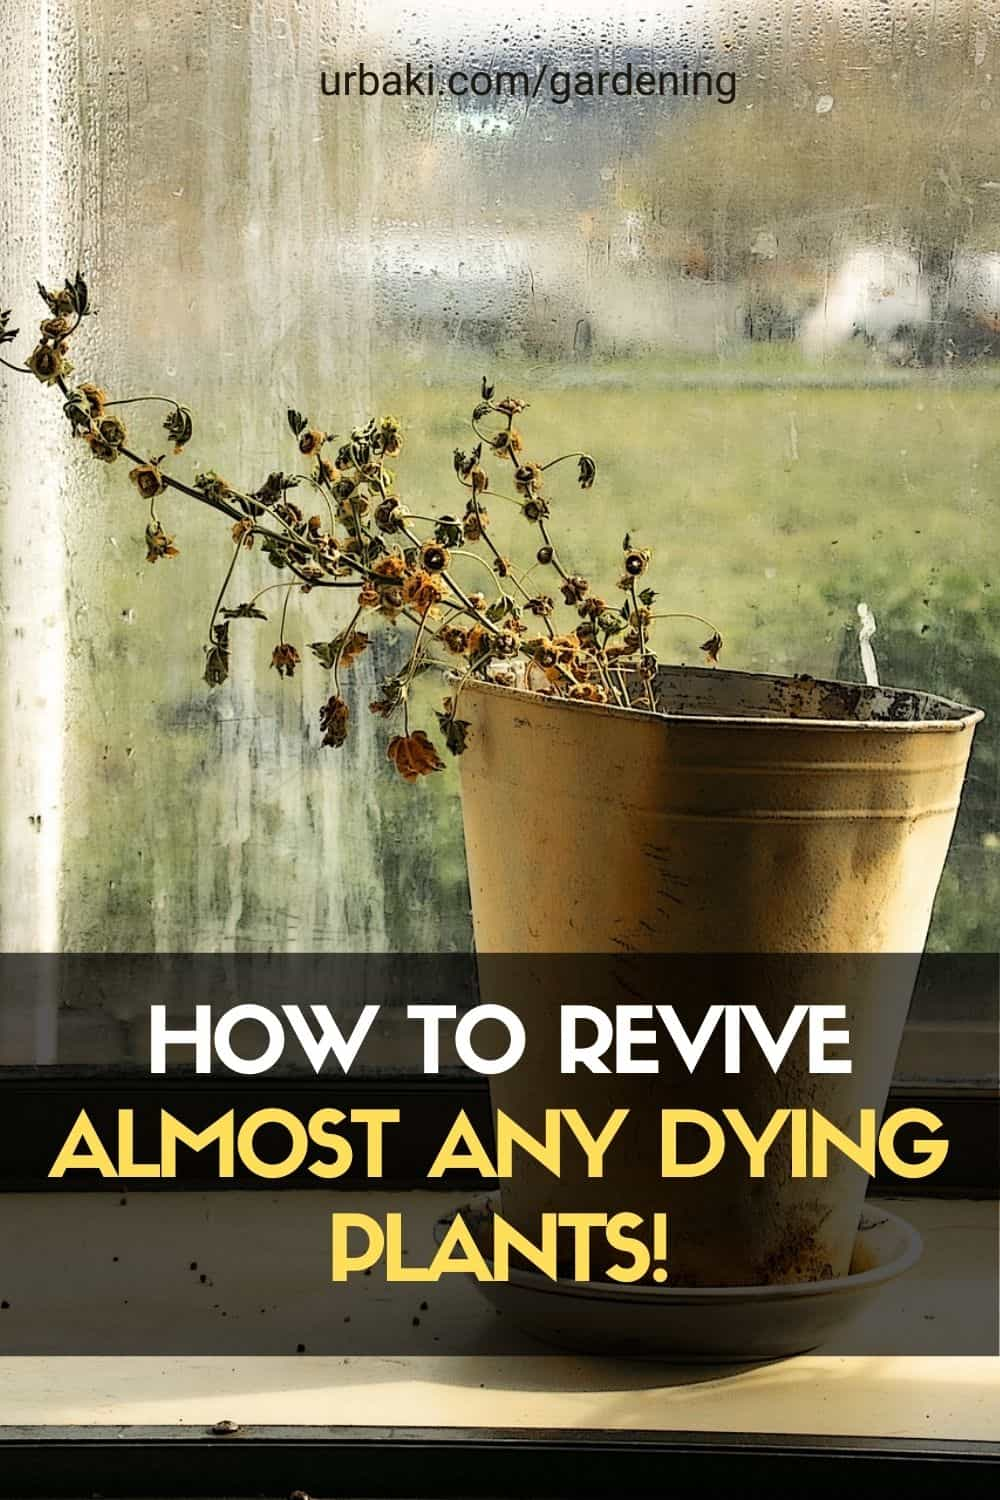 How To Revive Almost Any Dying Plants